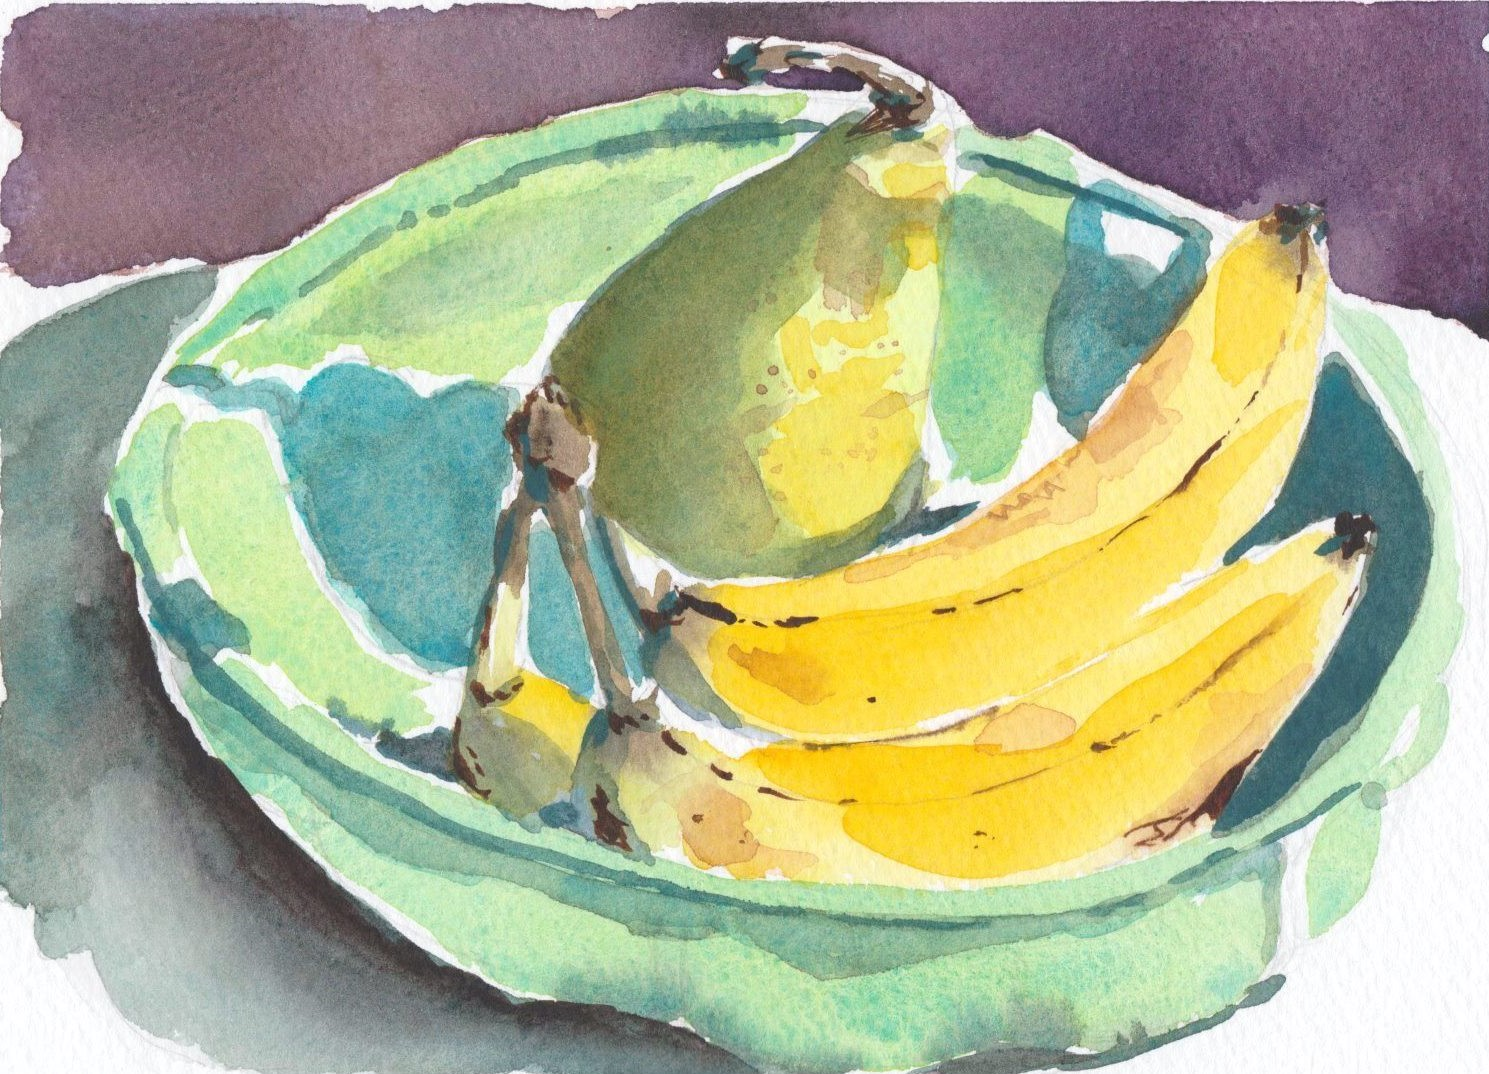 Watercolour painting of bananas and a pear in a celadon green china bowl in afternoon light.